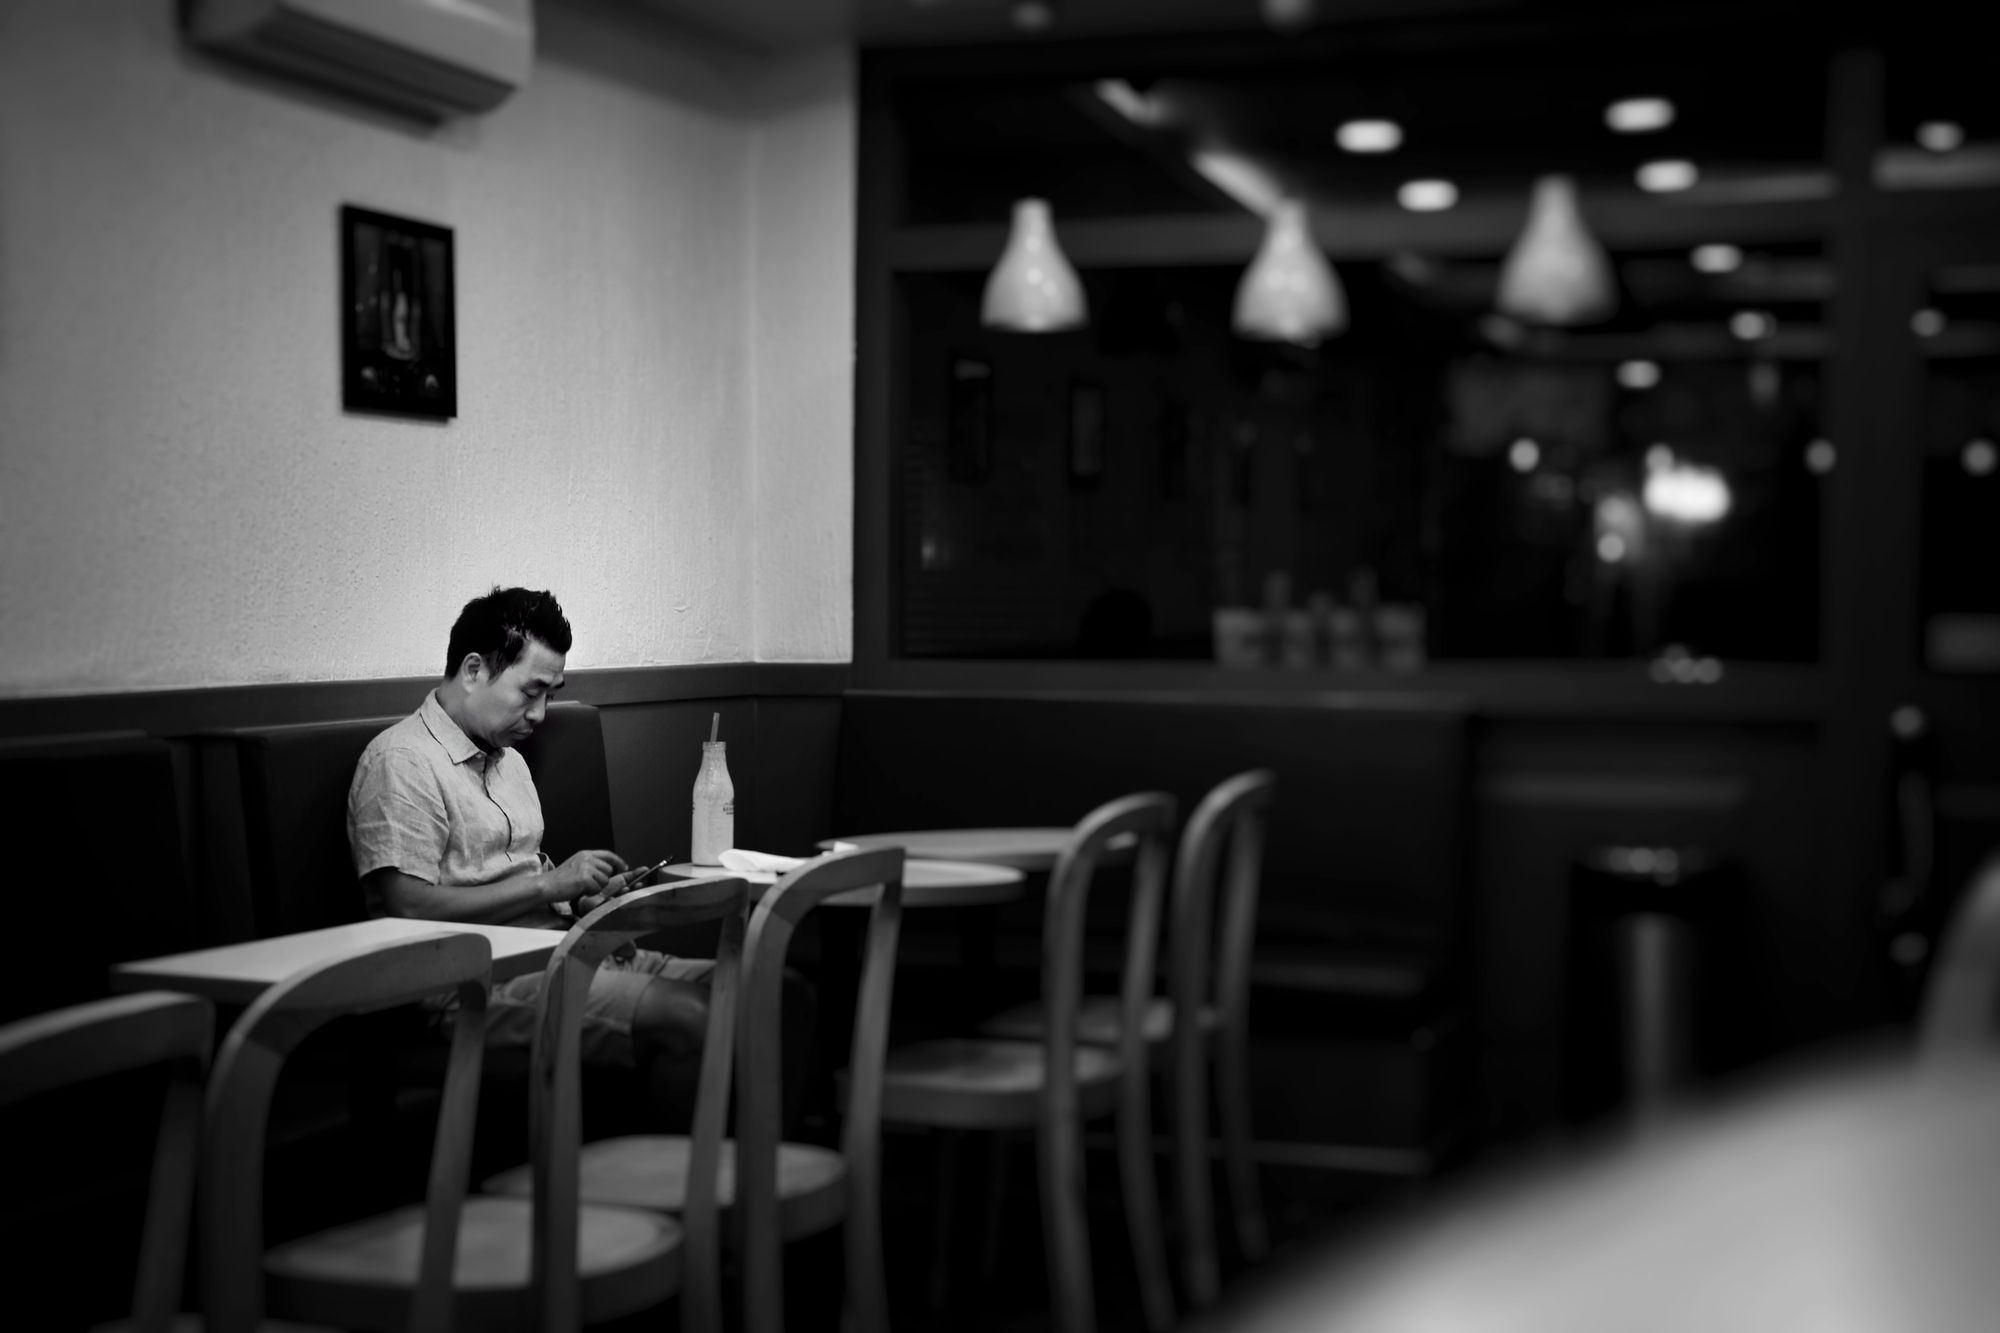 Loneliness - the biggest pitfall of remote work?